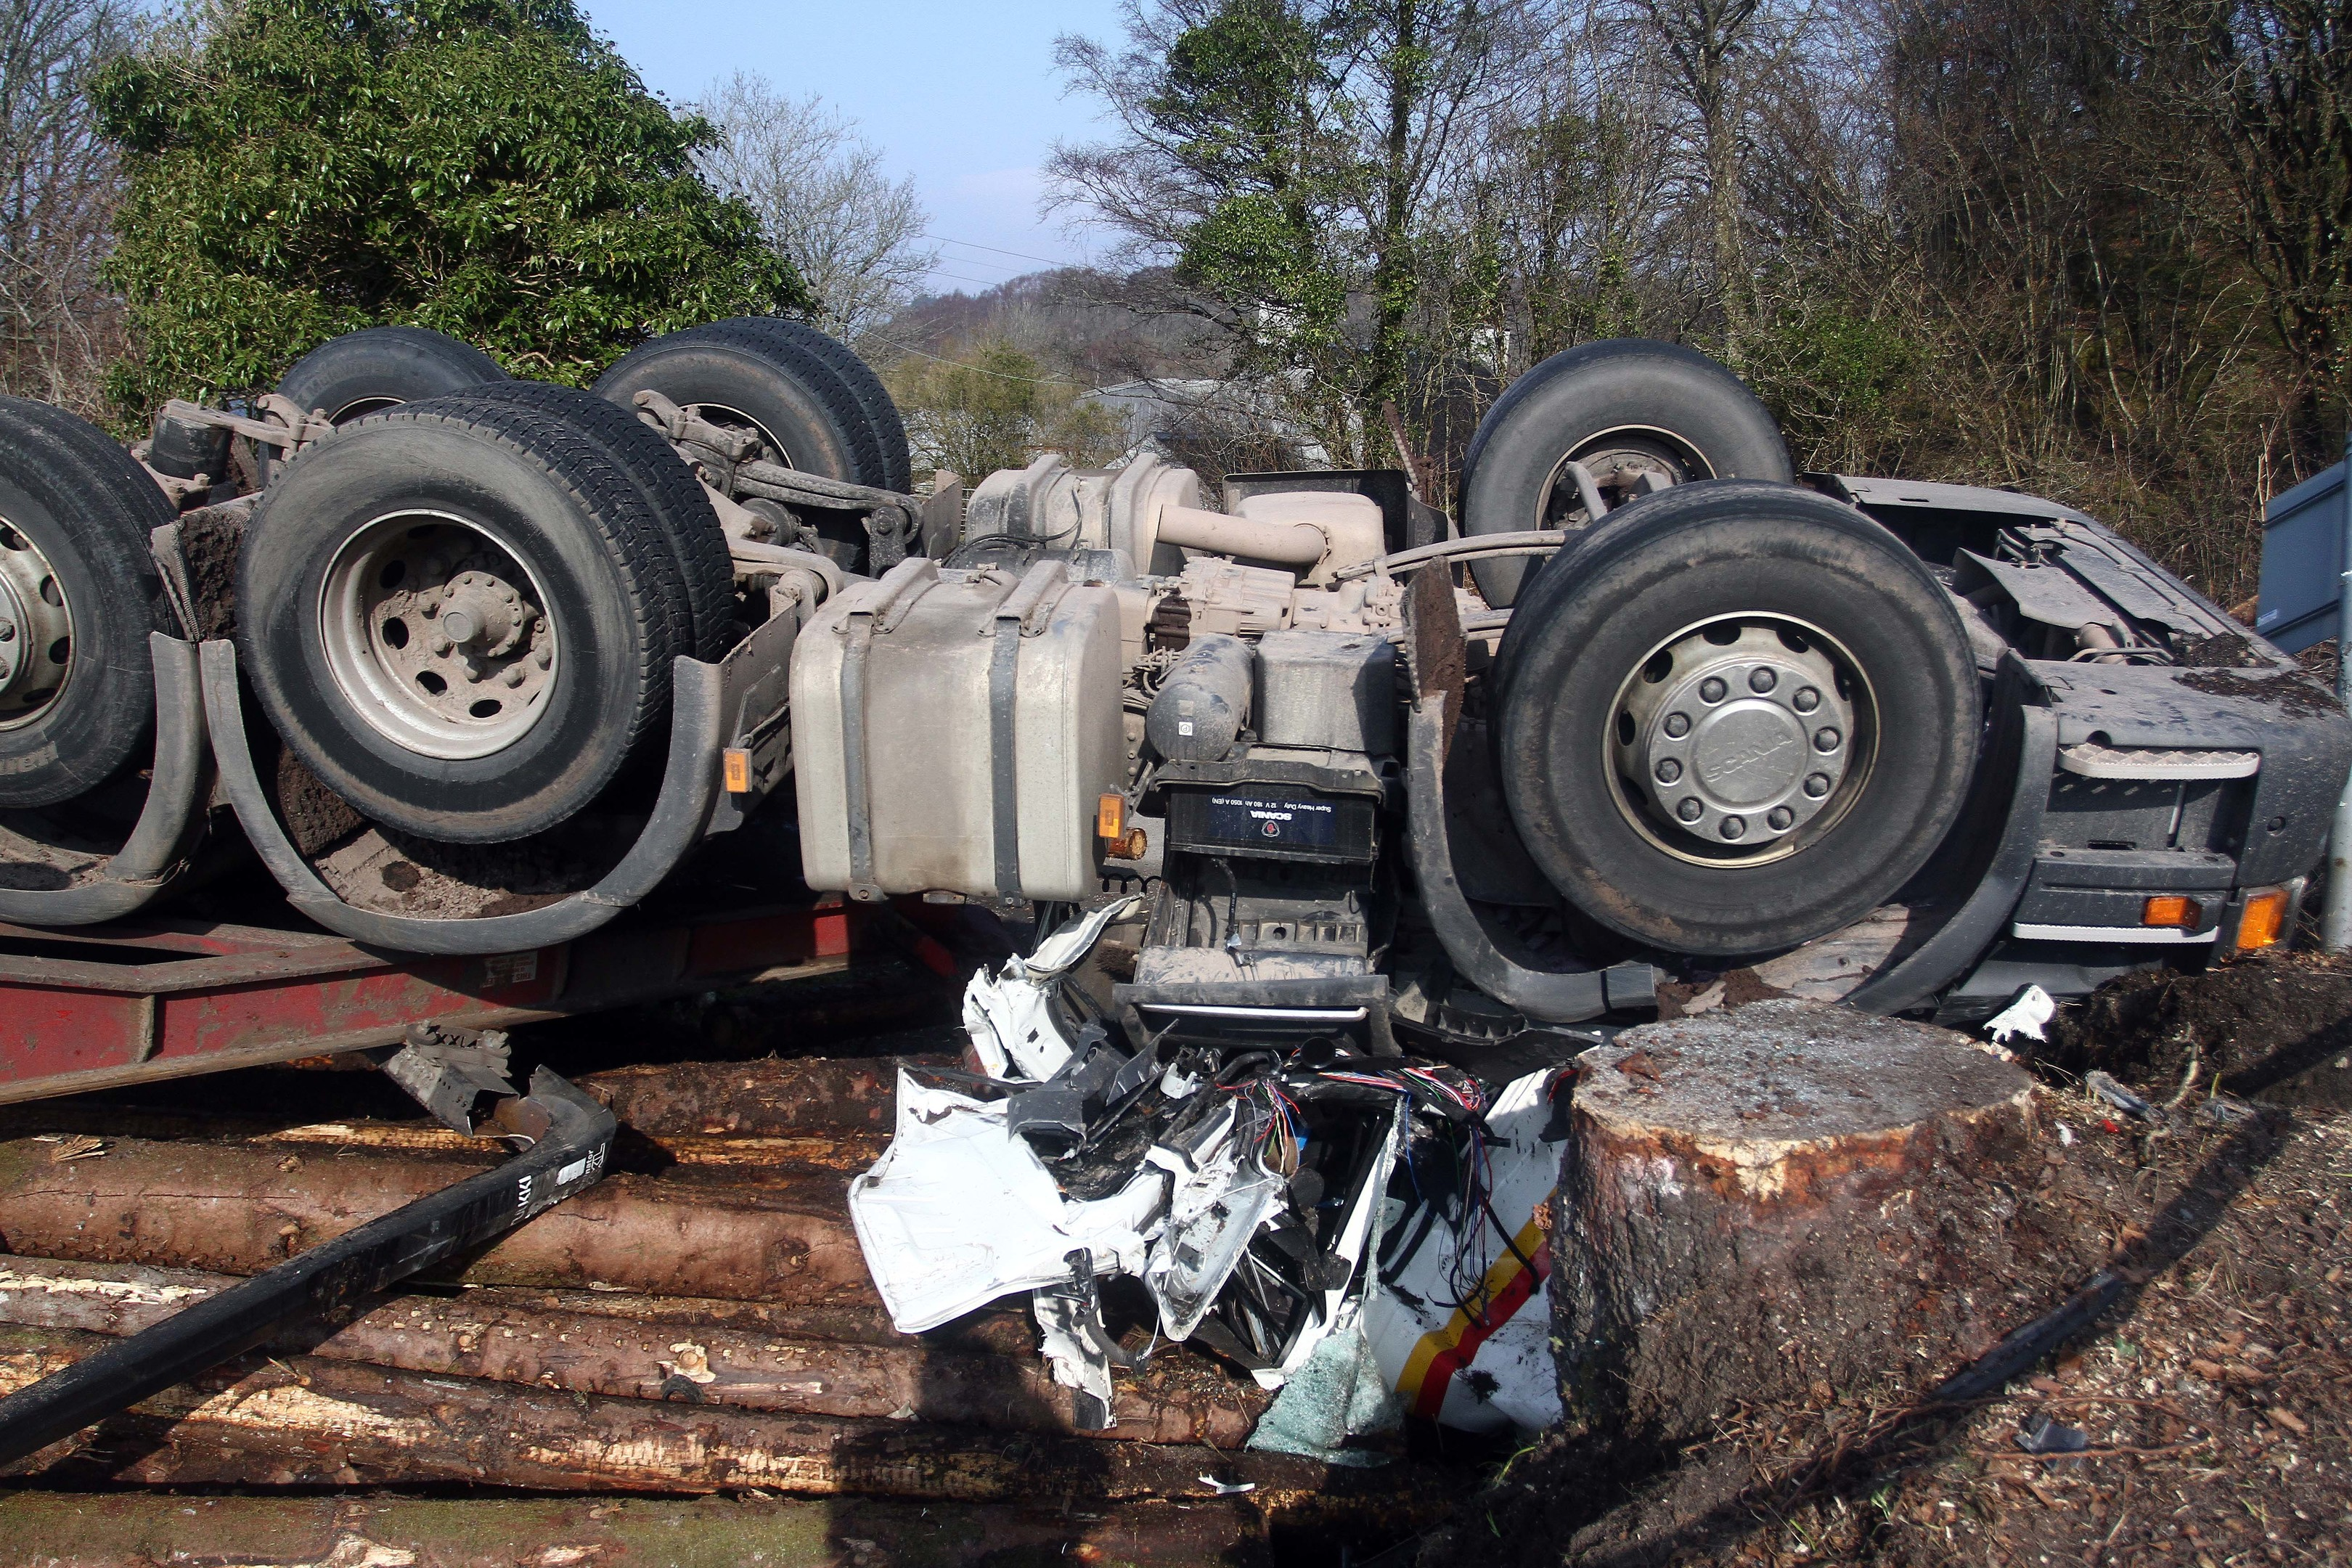 The lorry overturned on a road in Argyll